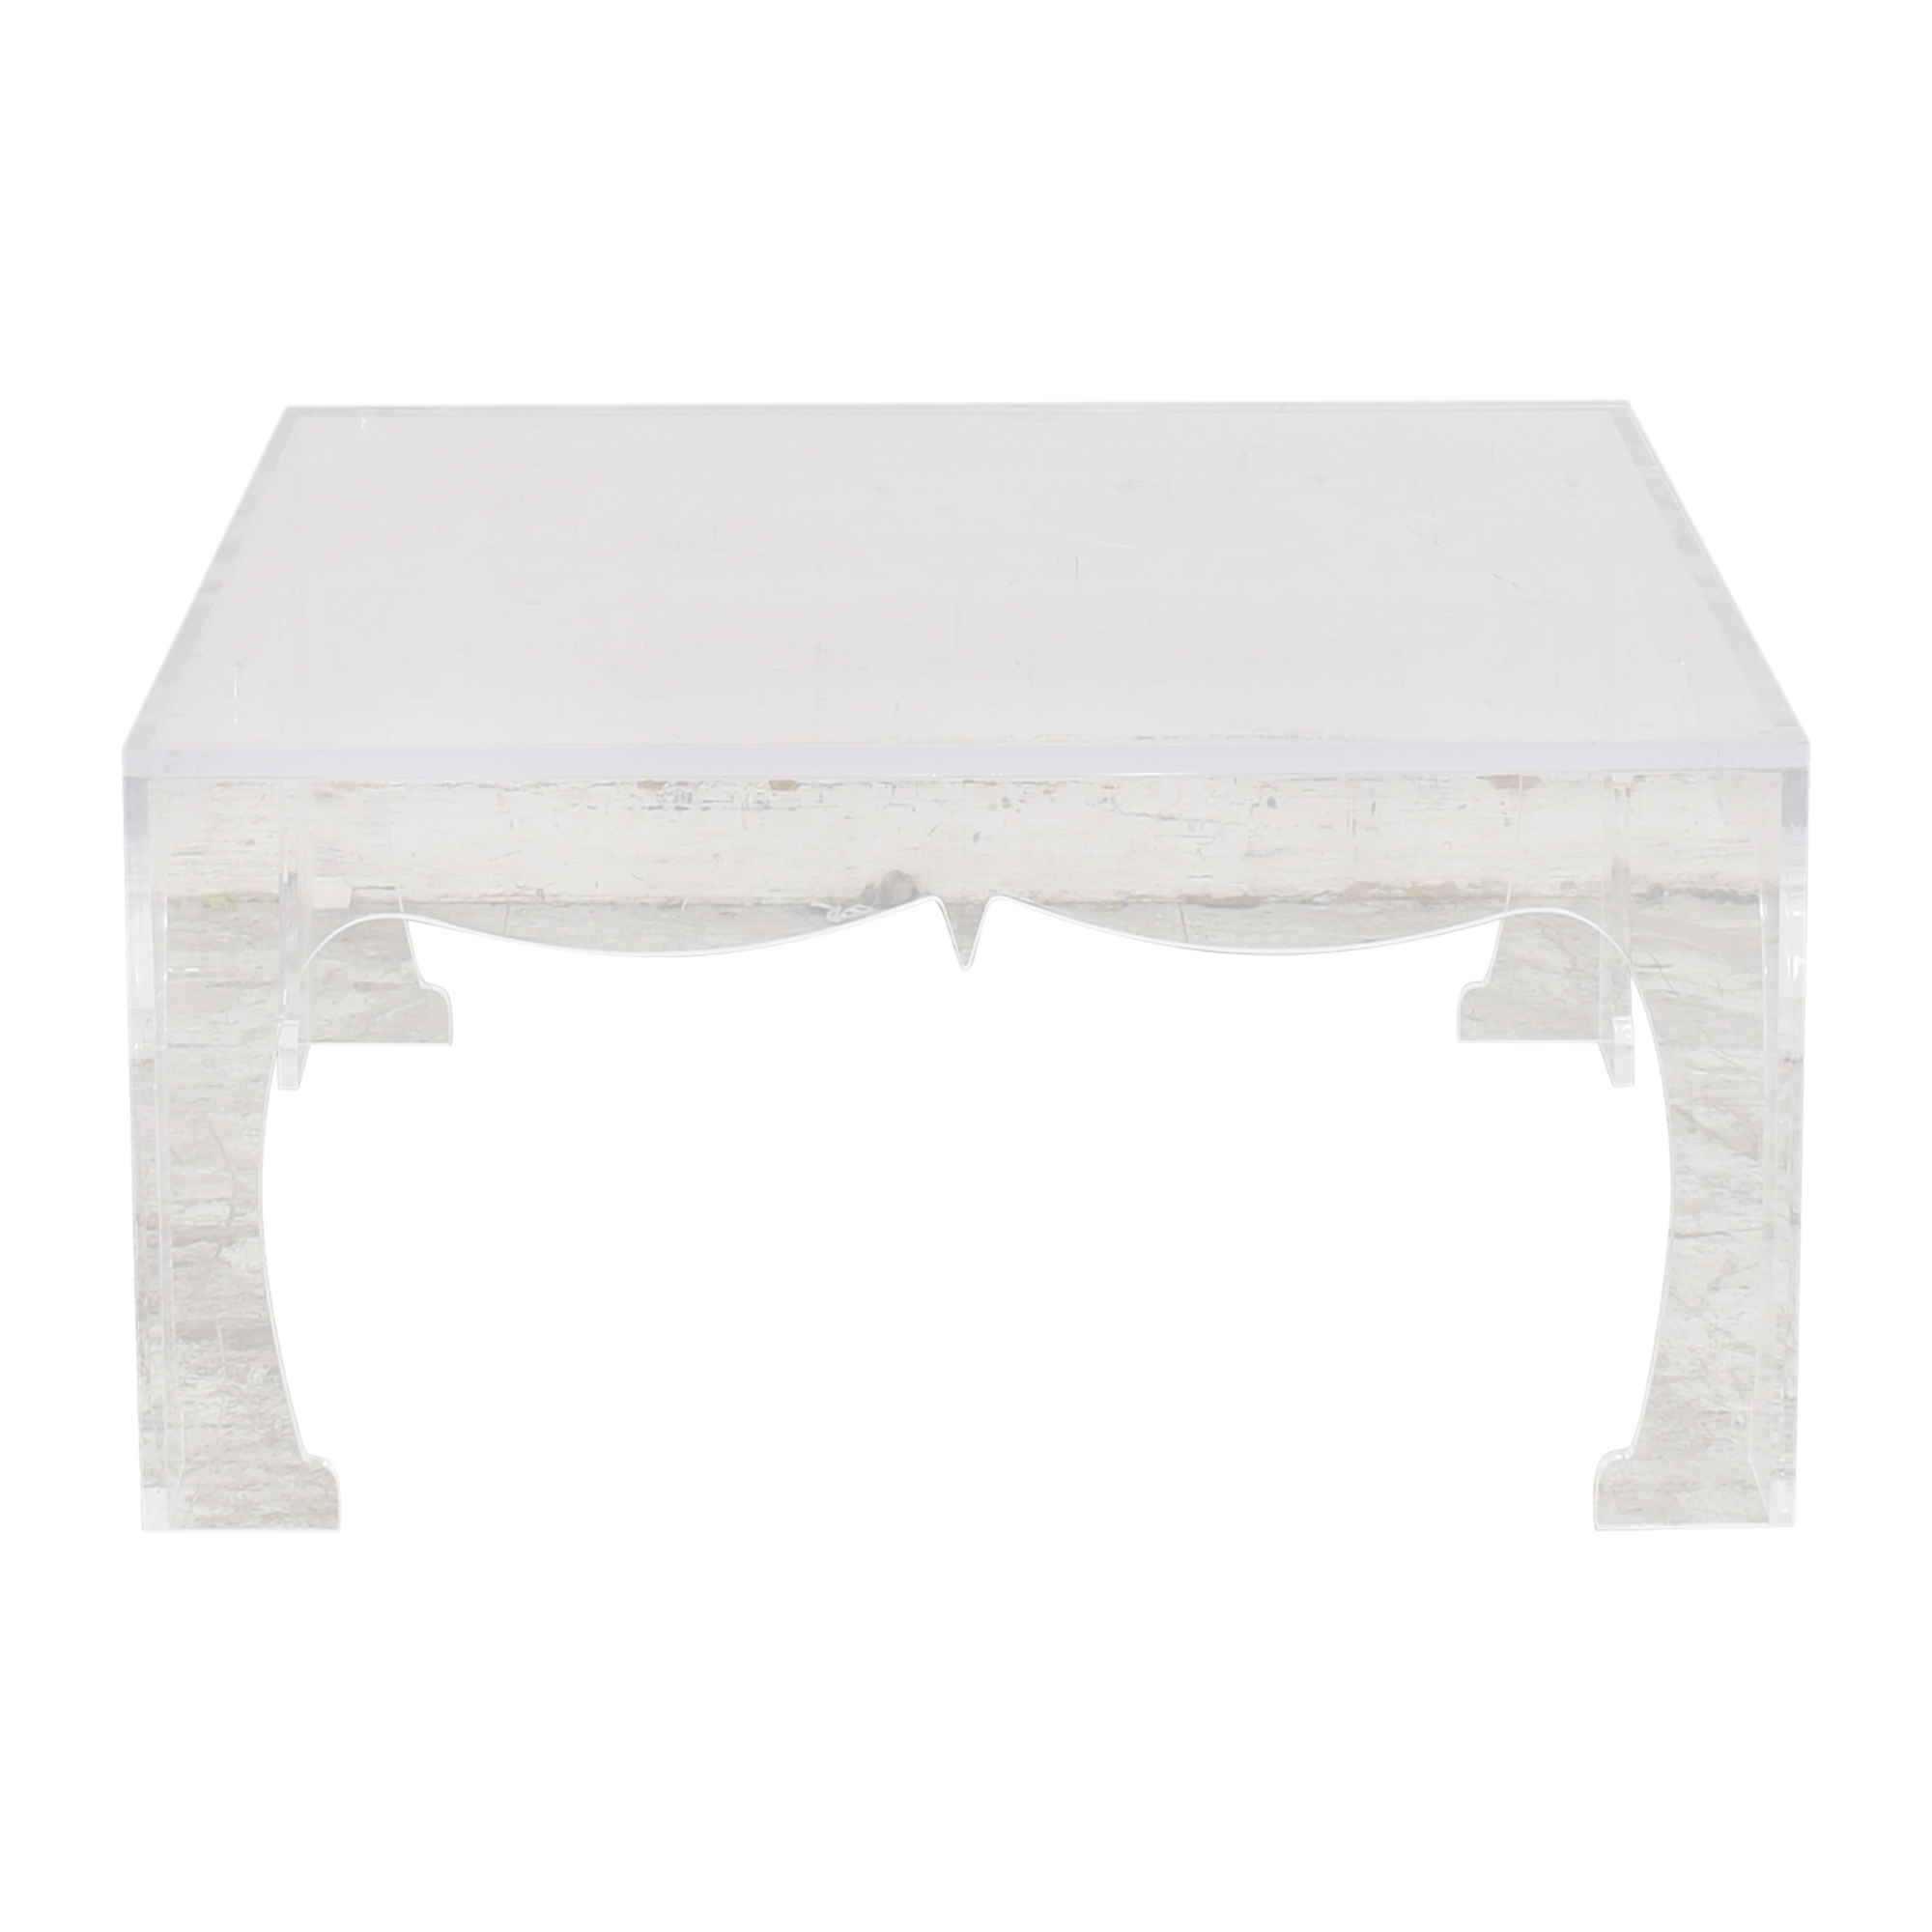 Plexi-Craft Square-Top Coffee Table / Coffee Tables